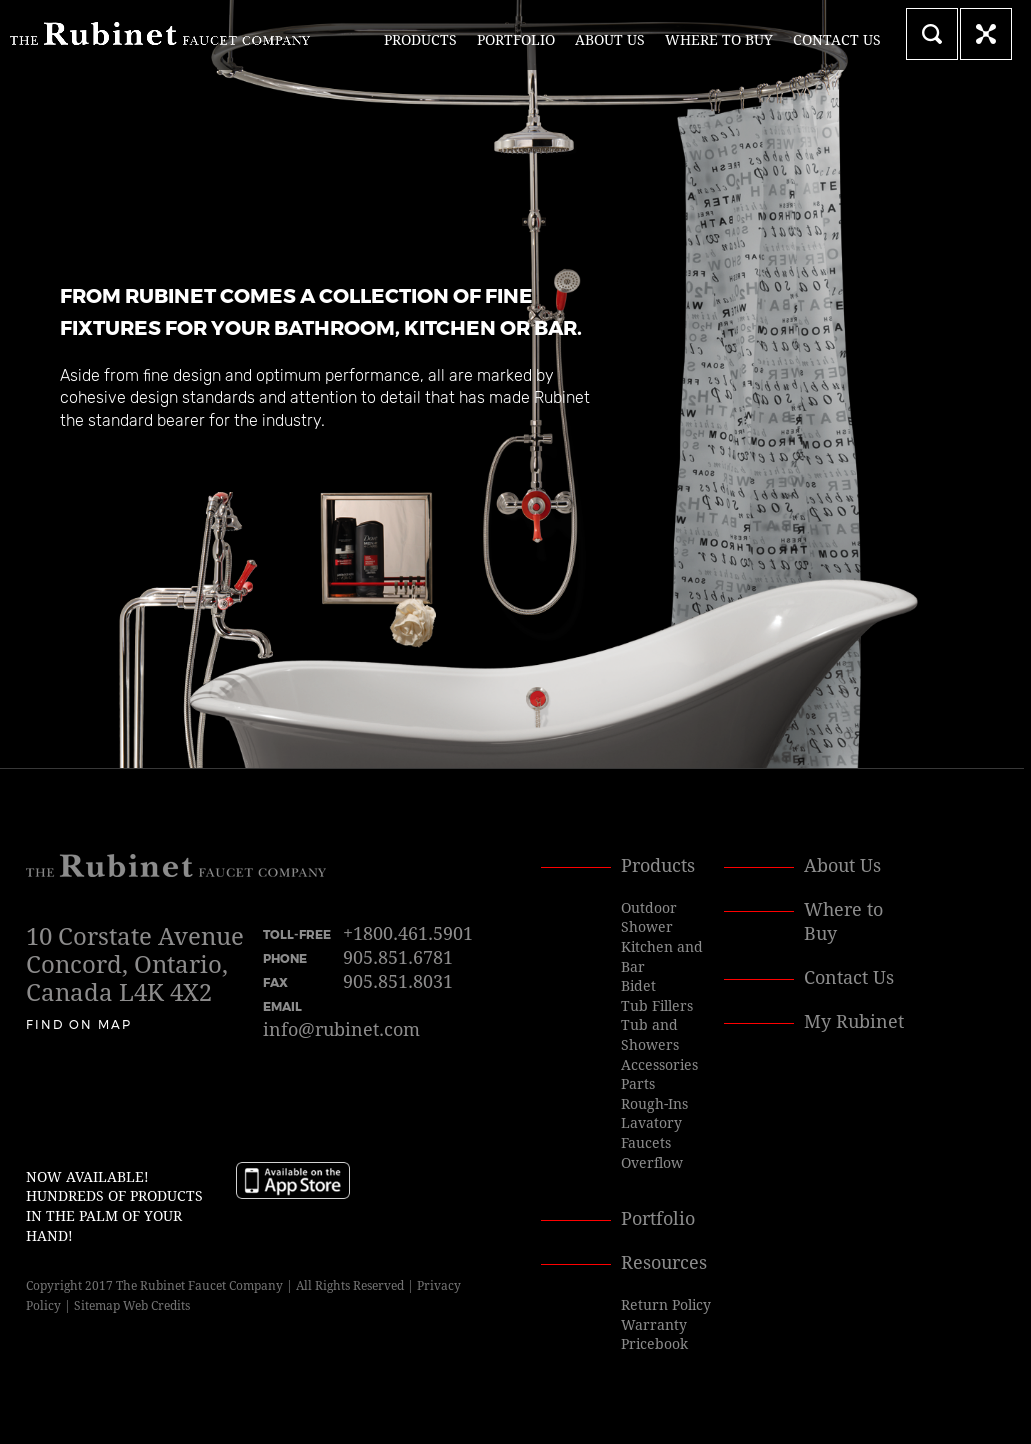 Rubinet Faucet Company Competitors, Revenue and Employees - Owler ...